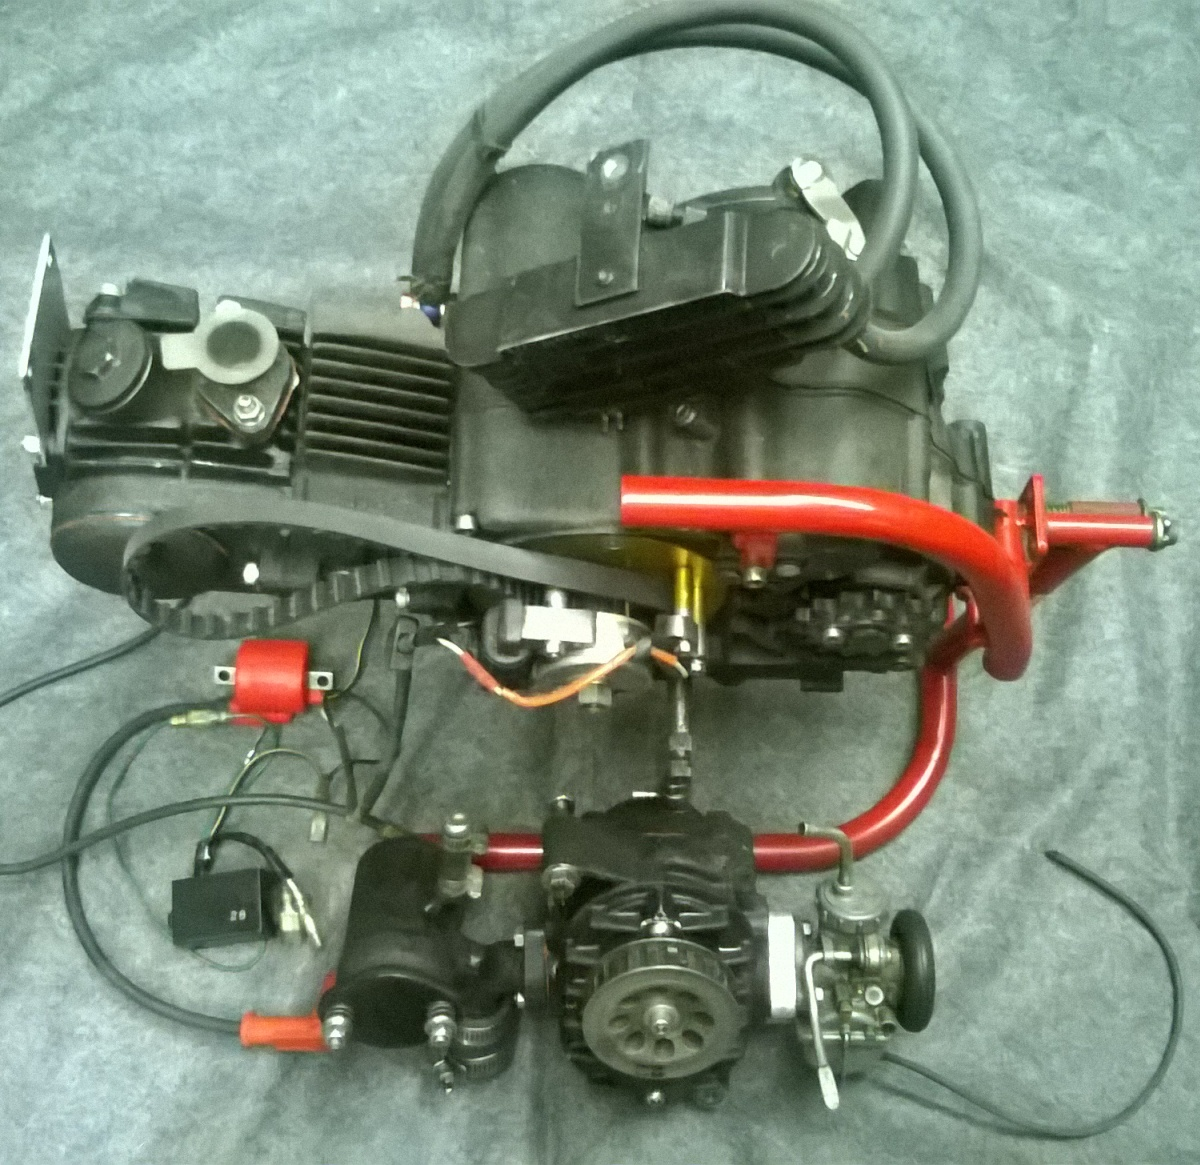 Honda Supercharger For Sale: Supercharging